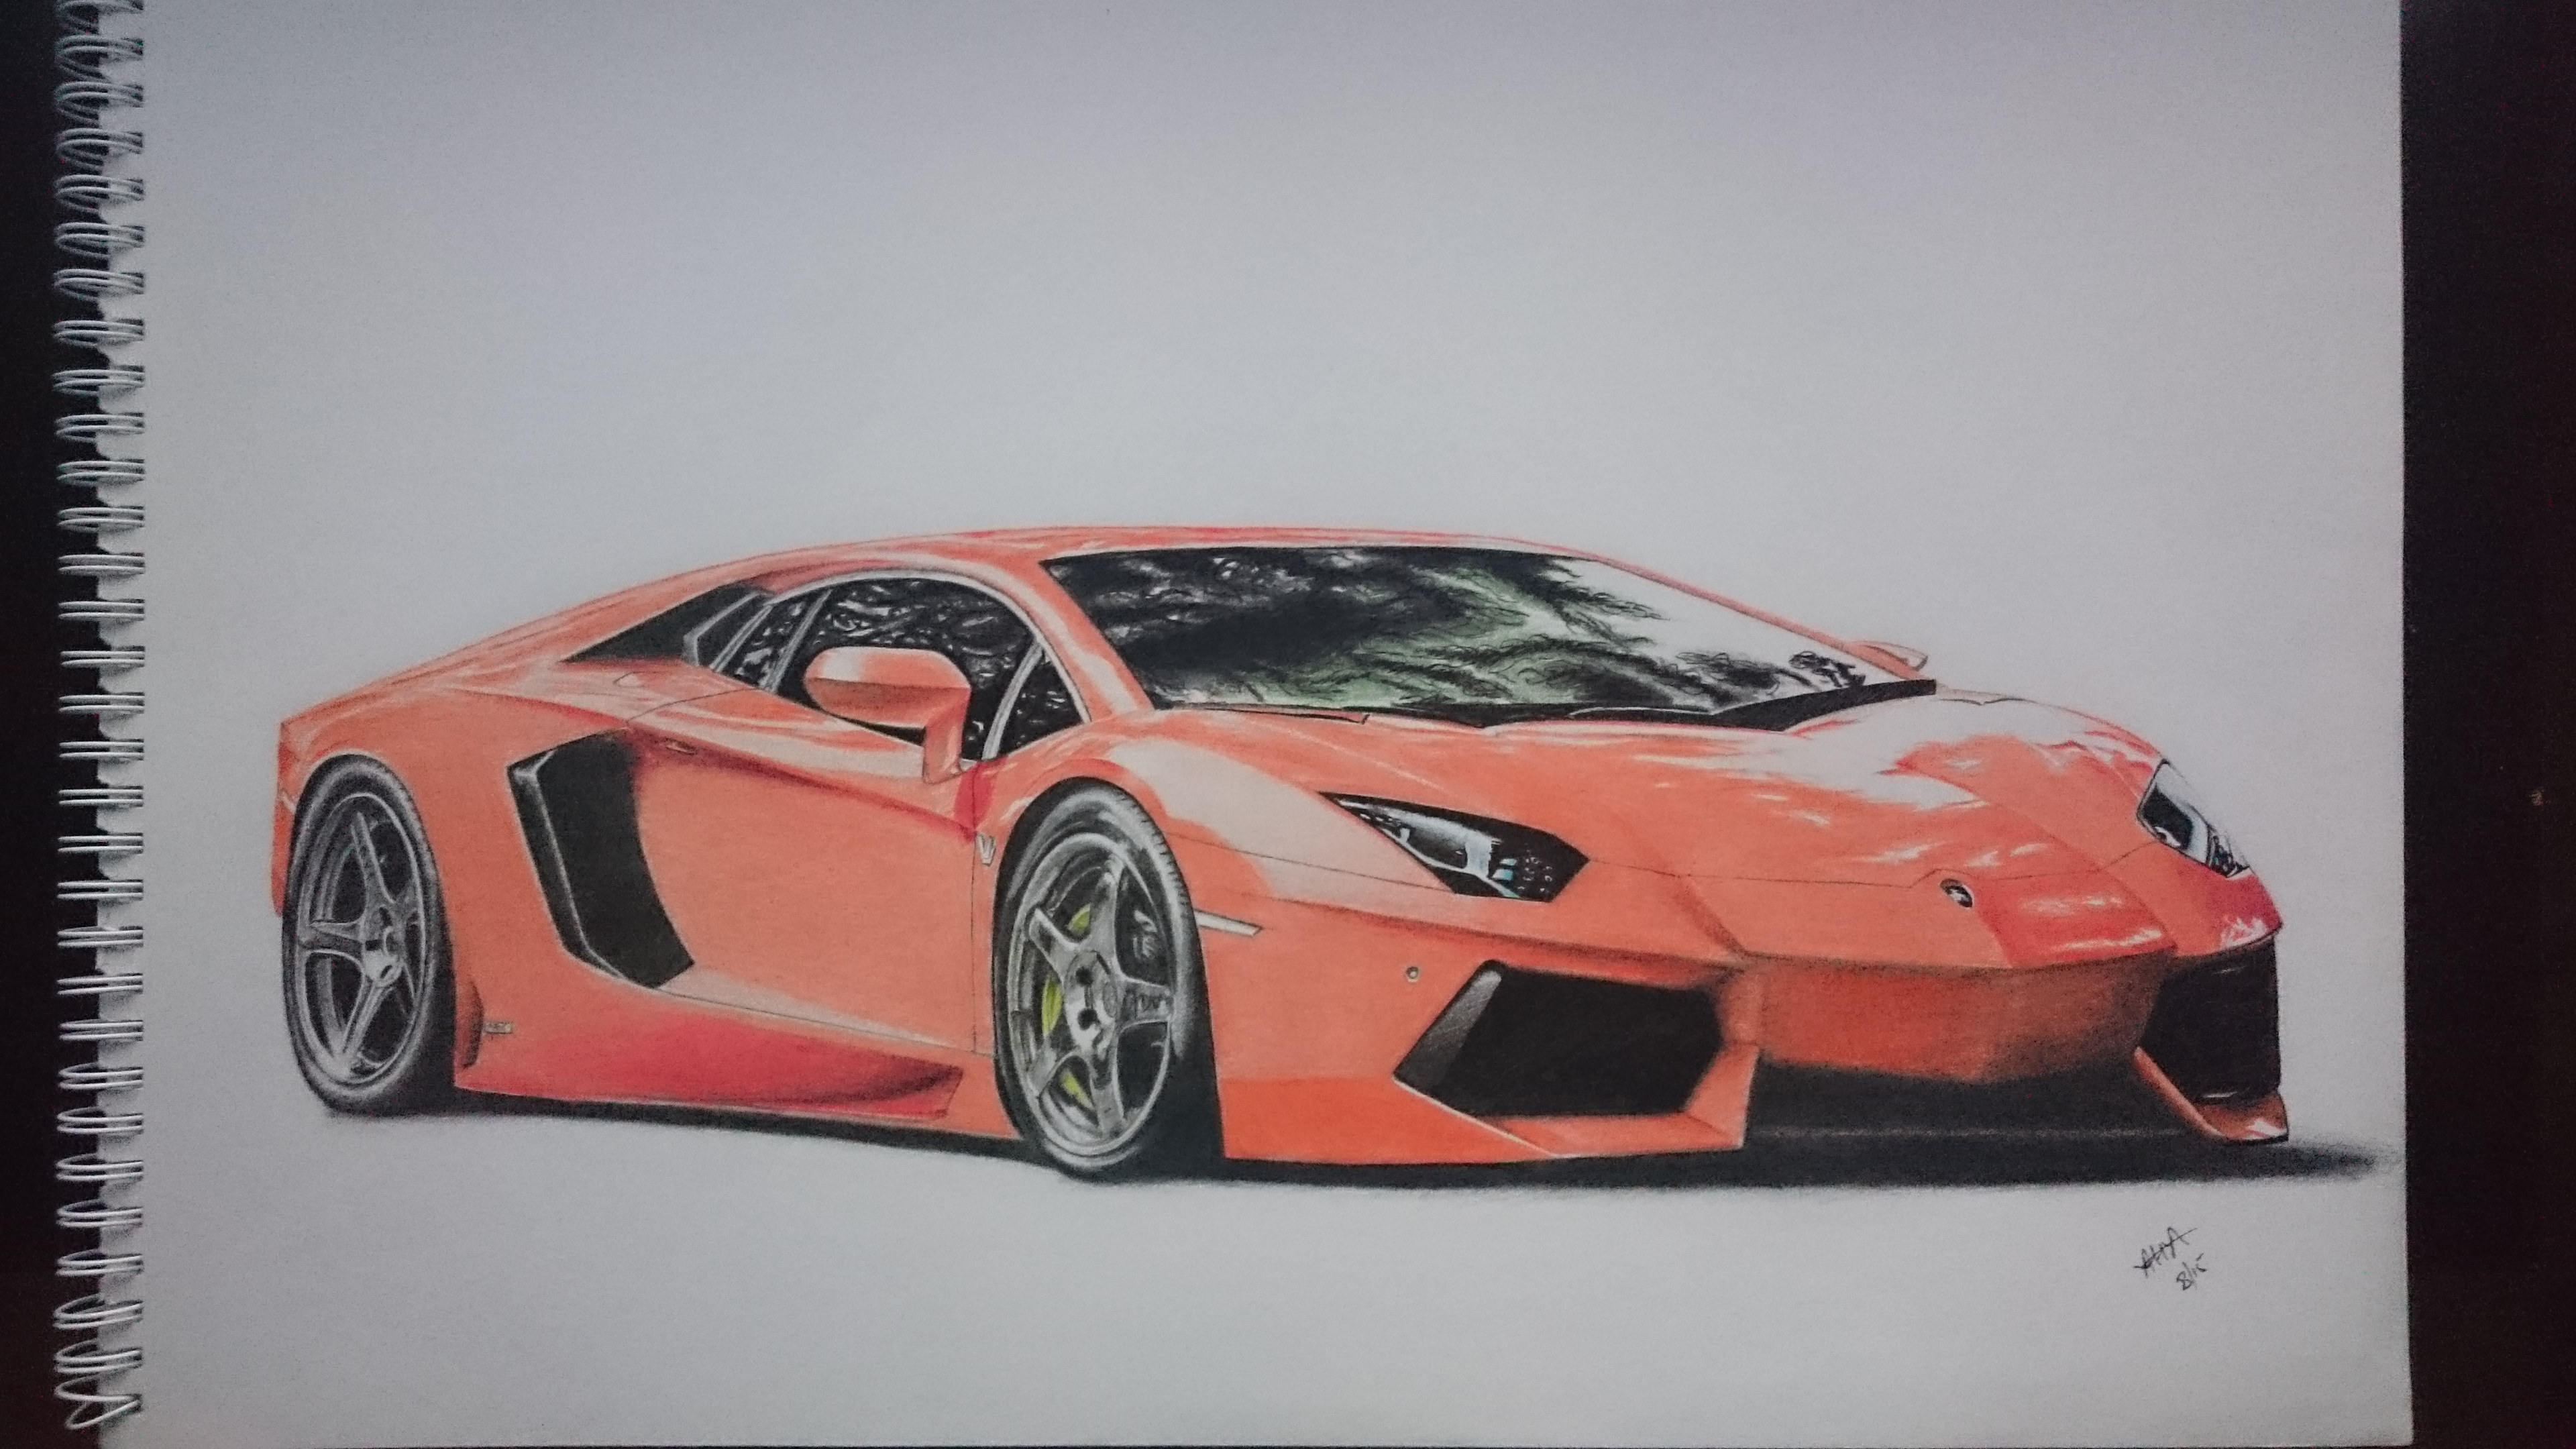 Colour a car - Lamborghini Aventador Drawing I Finished A Few Months Ago Page Size Is A3 Done With Colour Pencils And Took About 20 25 Hours Over 3 Weeks